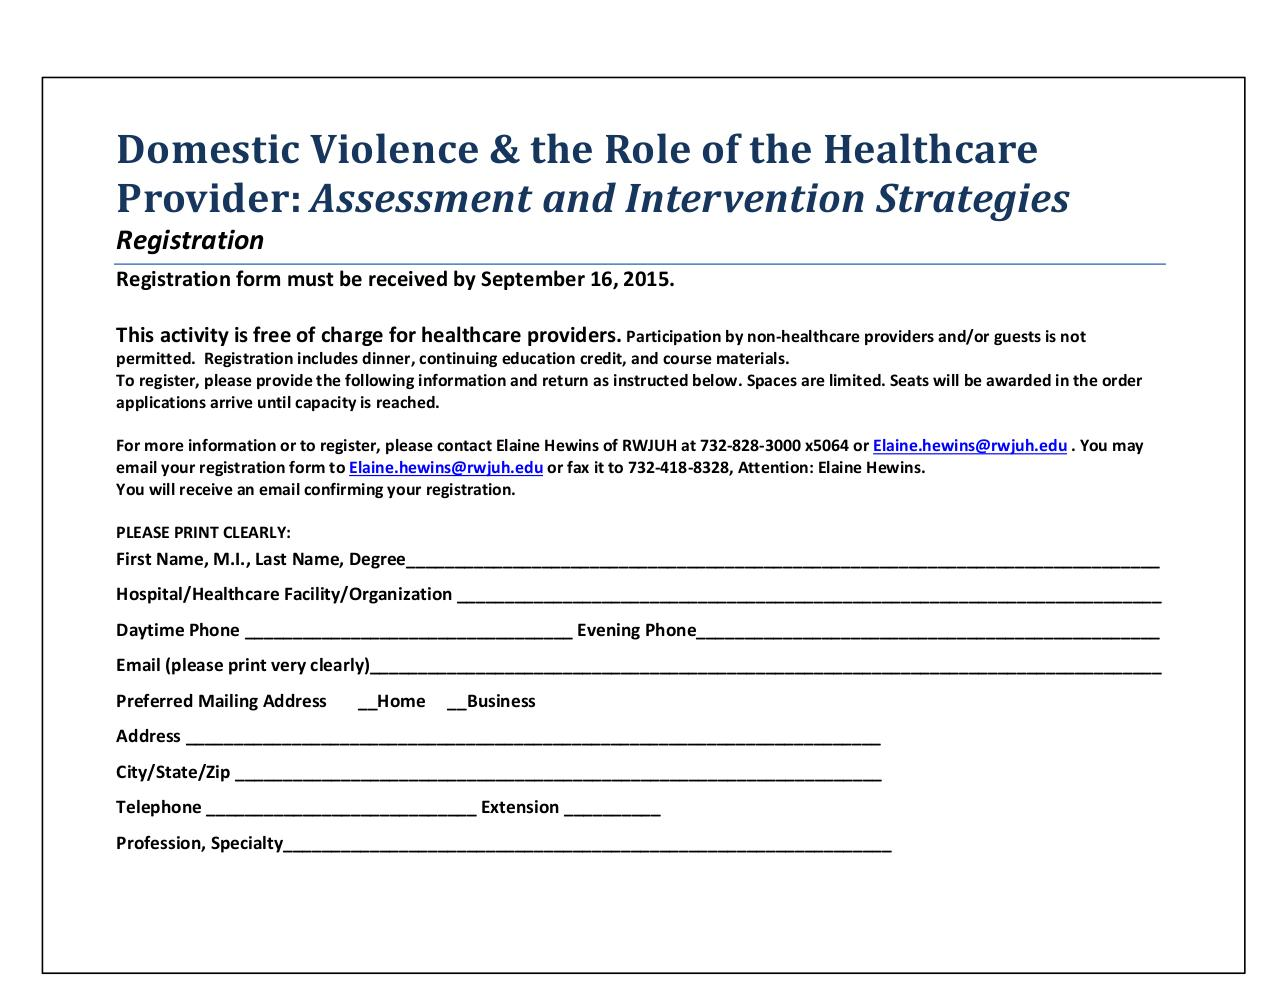 Continuing ed program for domestic violence.pdf - page 3/3